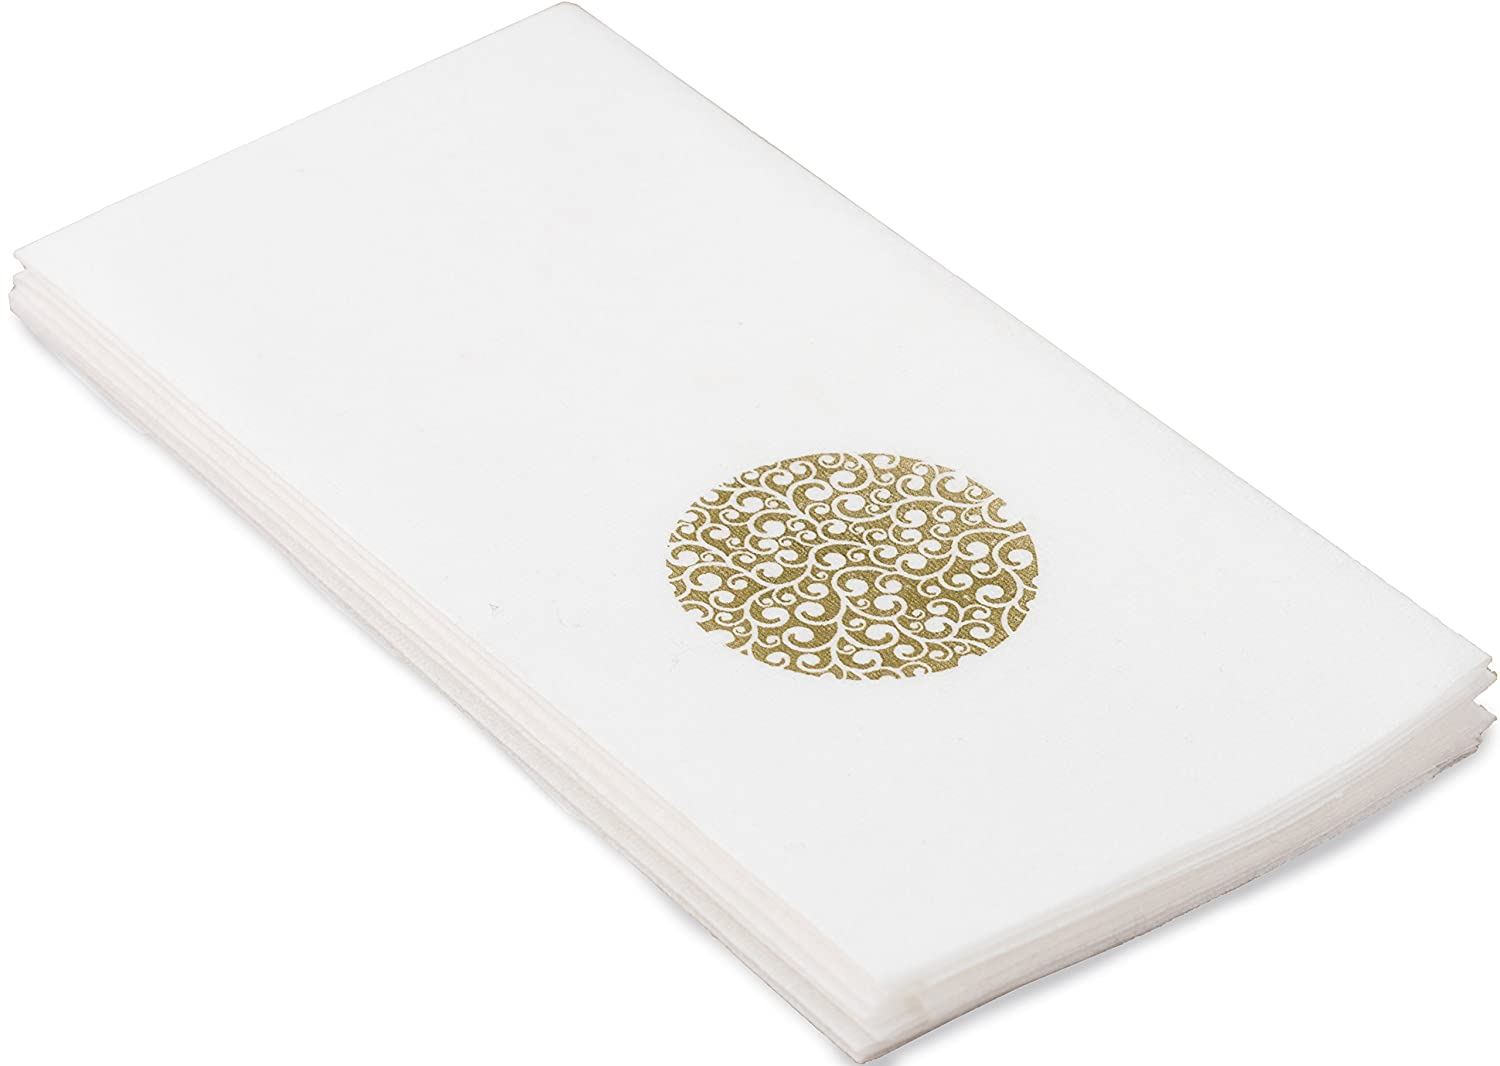 Echo Beach Cloth-Like Guest Towels Napkins, White with Decorative Gold Circle, 1/6 Fold, 17 Inch by 12 Inch, 100 Units Per Pack Plus e-newsletter Echo Beach Products